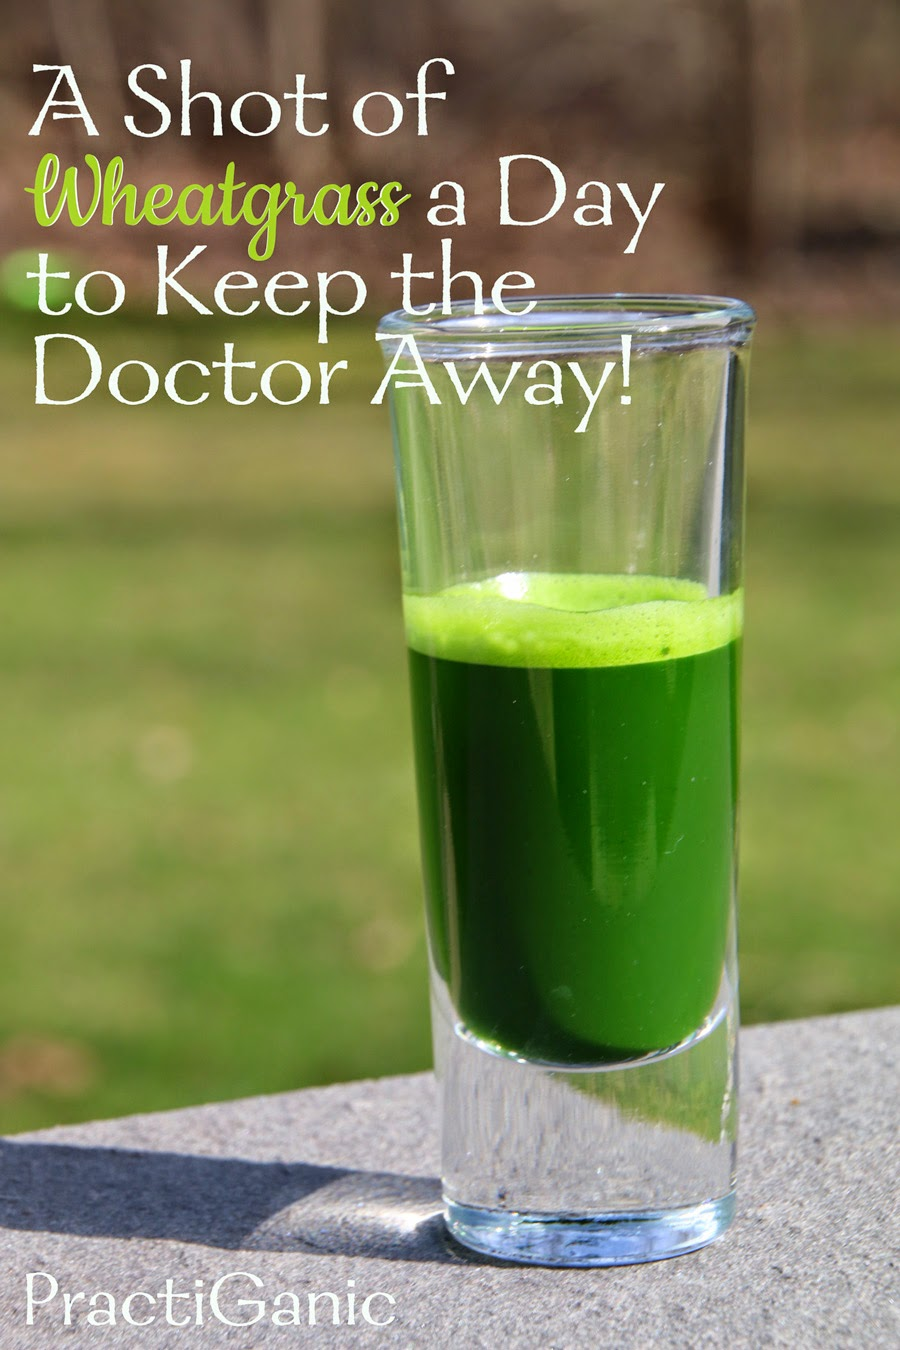 Why I Love Wheatgrass